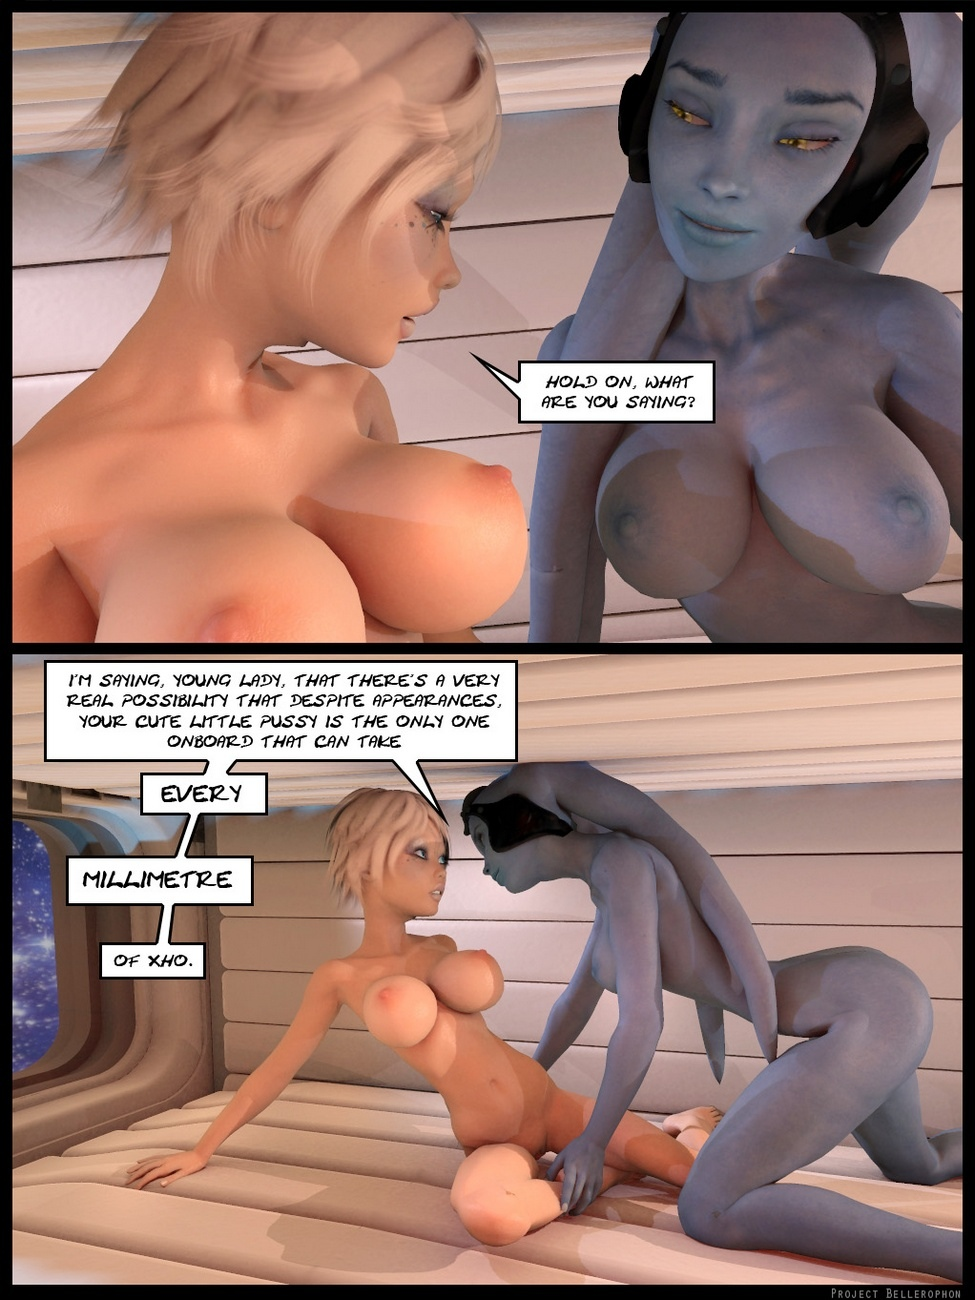 Shadows-And-Dust 83 free sex comic